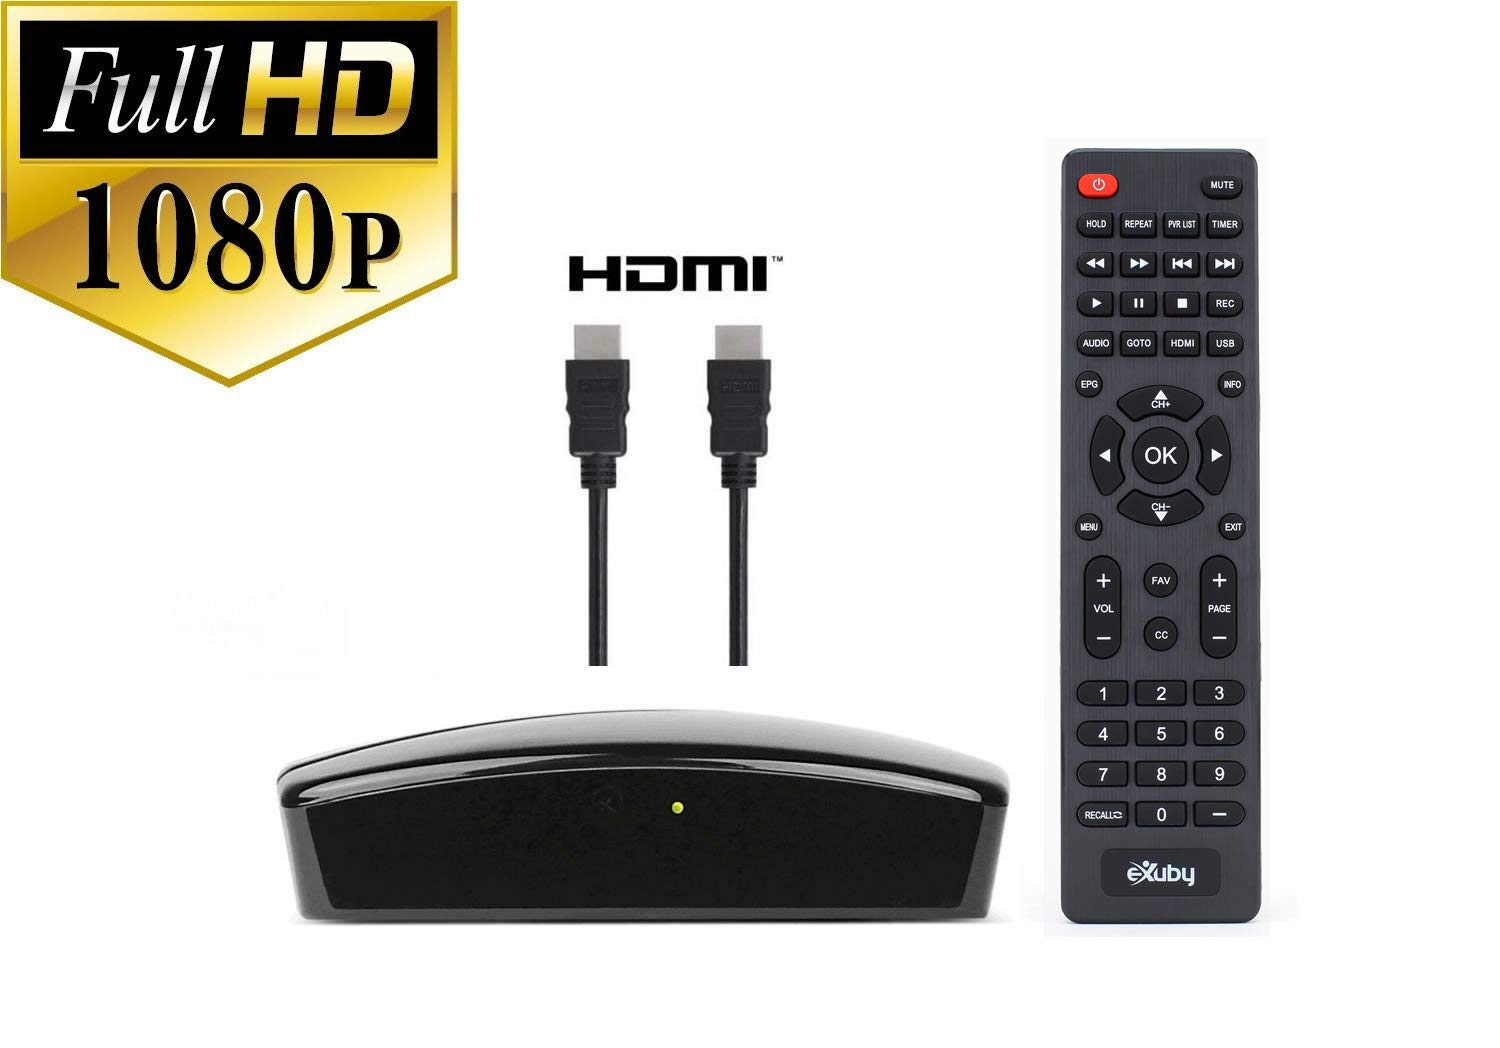 Digital TV Tuner for Viewing and Recording HD Digital Channels for Free (Instant or Scheduled Recording, 1080P HDTV, High Resolution, HDMI Output, 7 Day Program Guide) with HDMI and RCA Cable